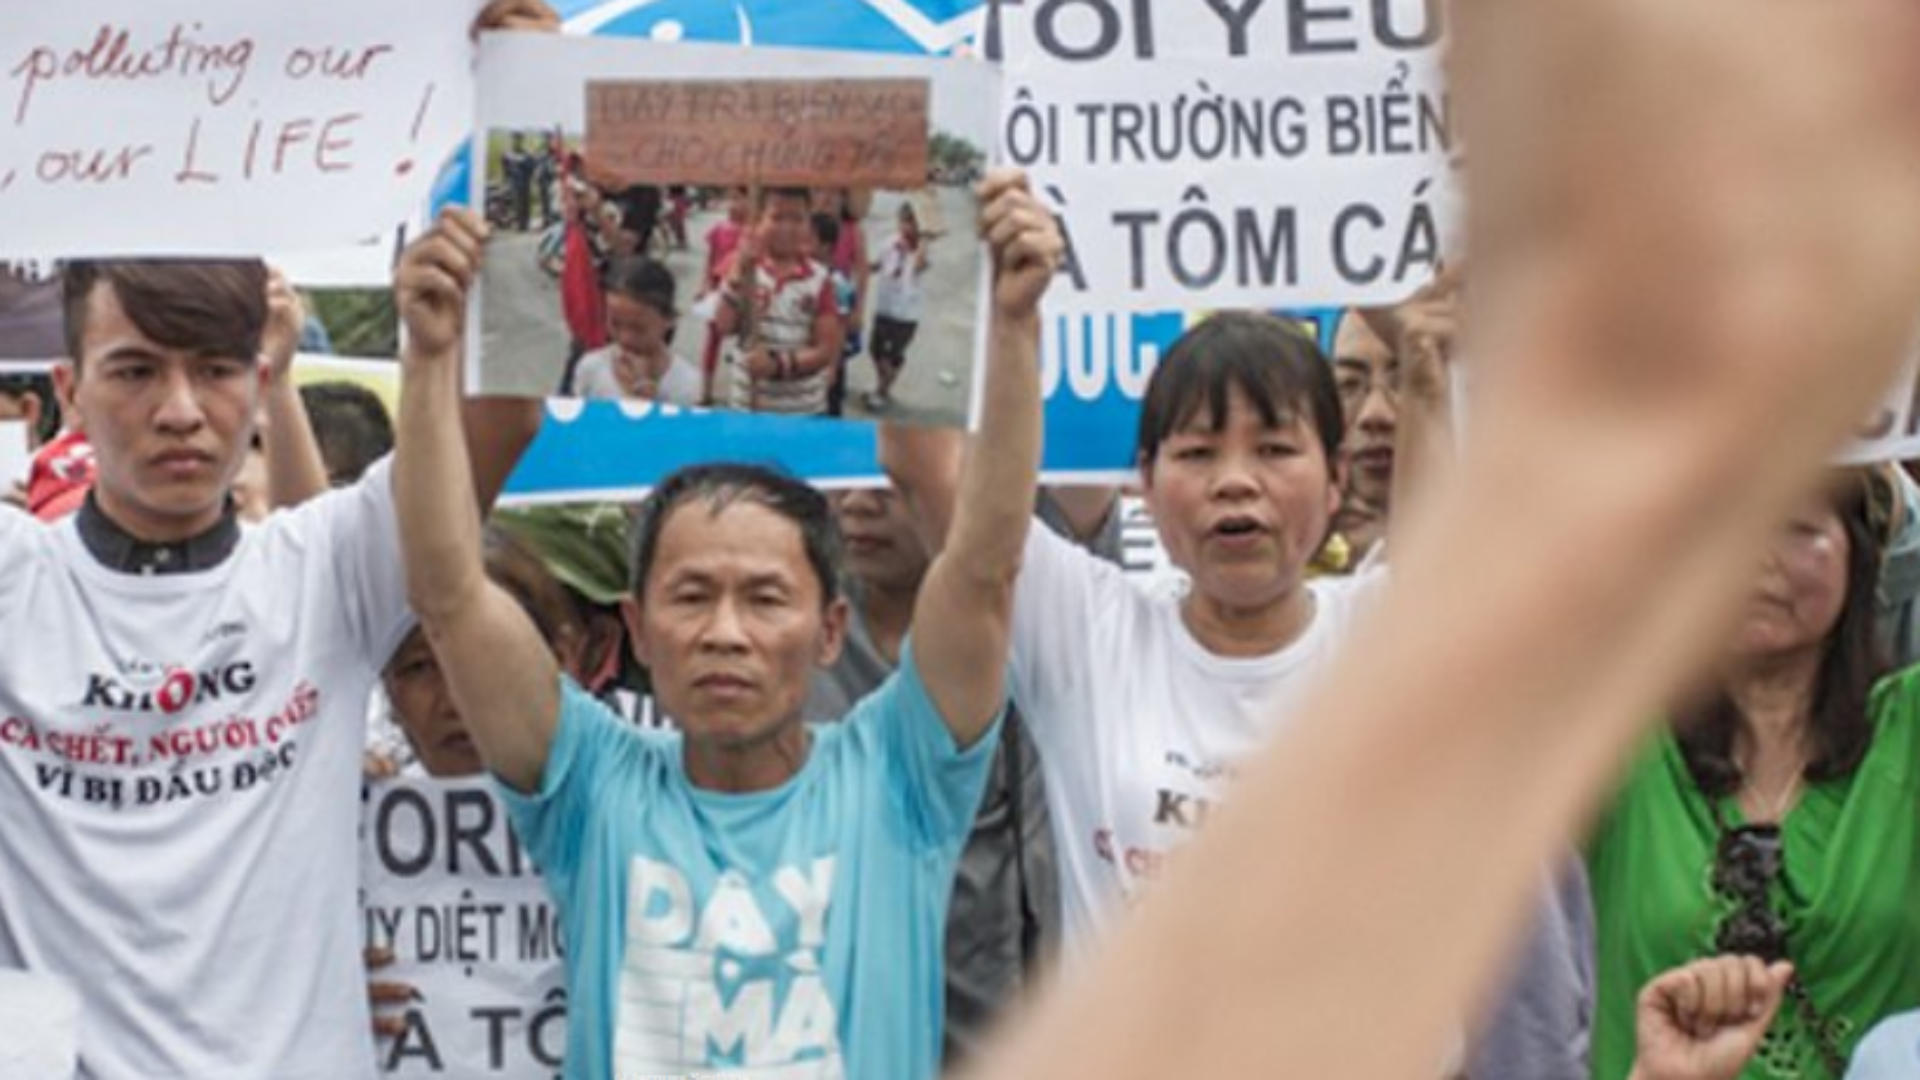 Vietnam activists face sustained government crackdown ahead of APEC – dpa International